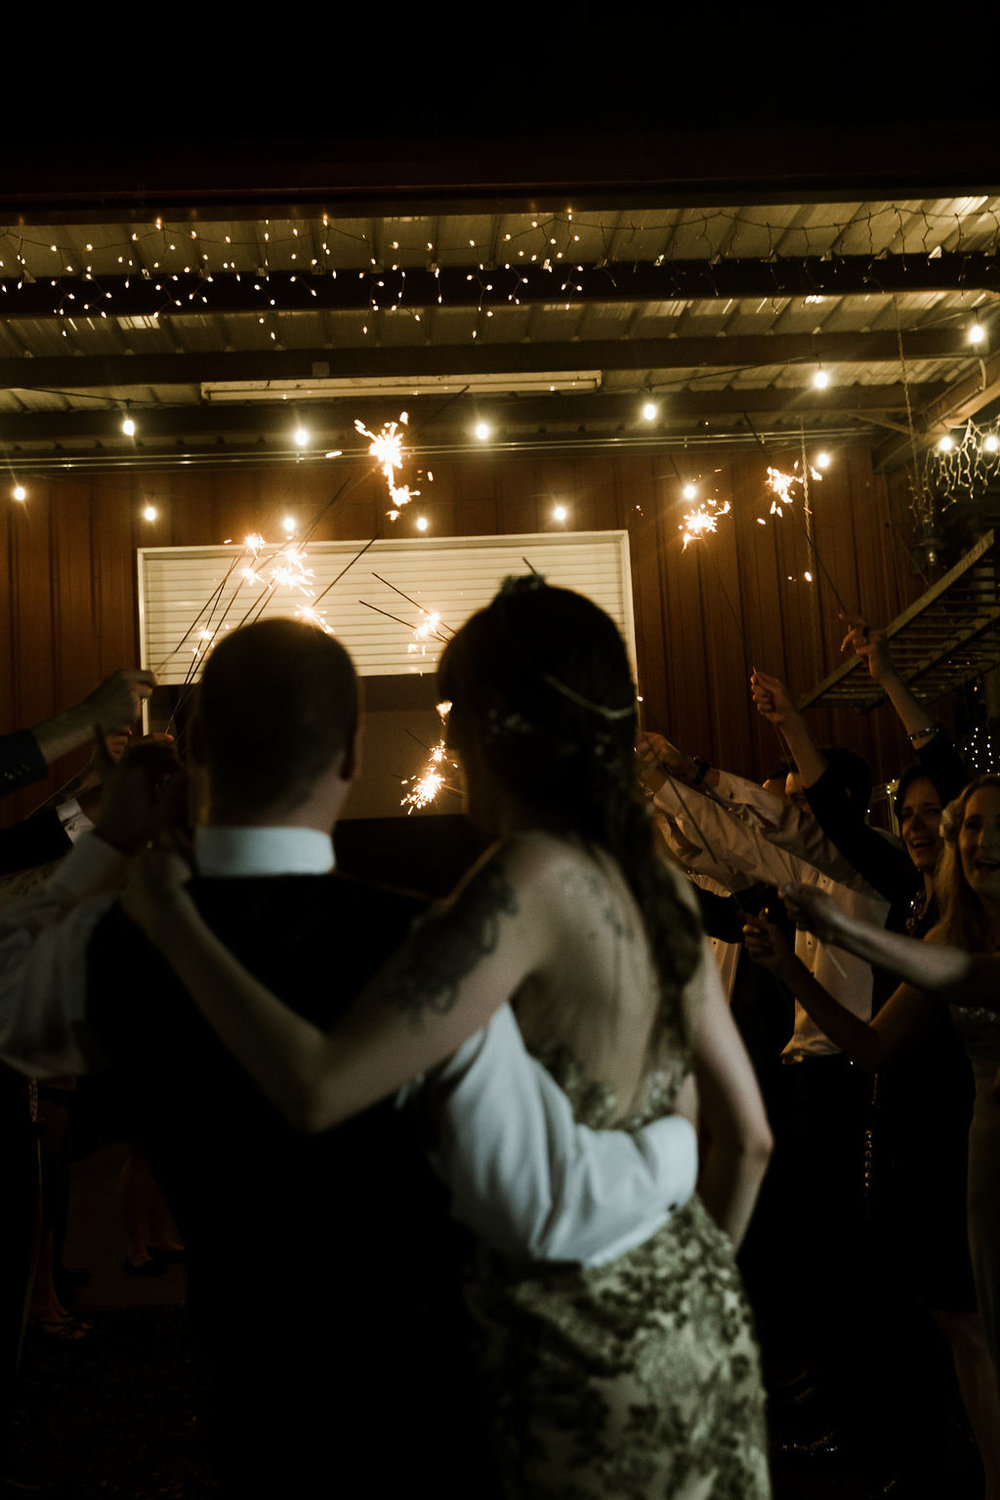 IMGL7486Desiree-Eric-wedding-vaniaelisephotography.jpg